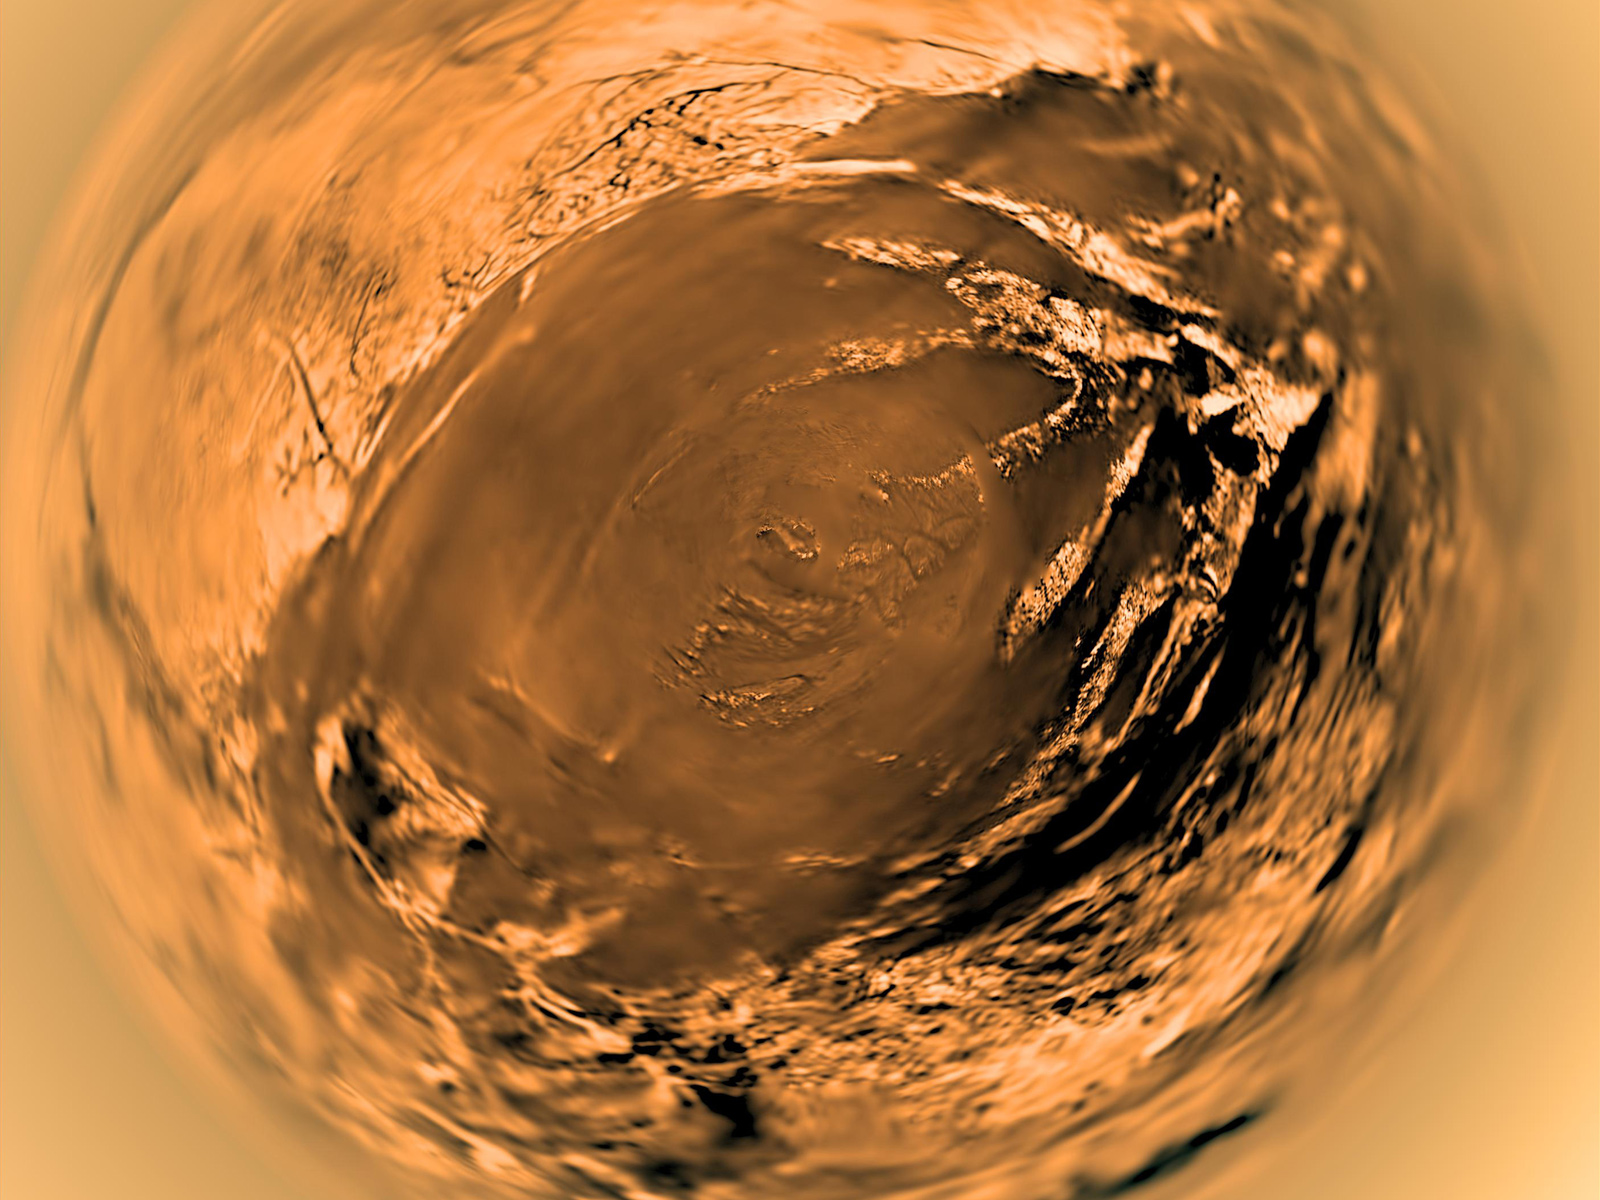 Titan from Huygens